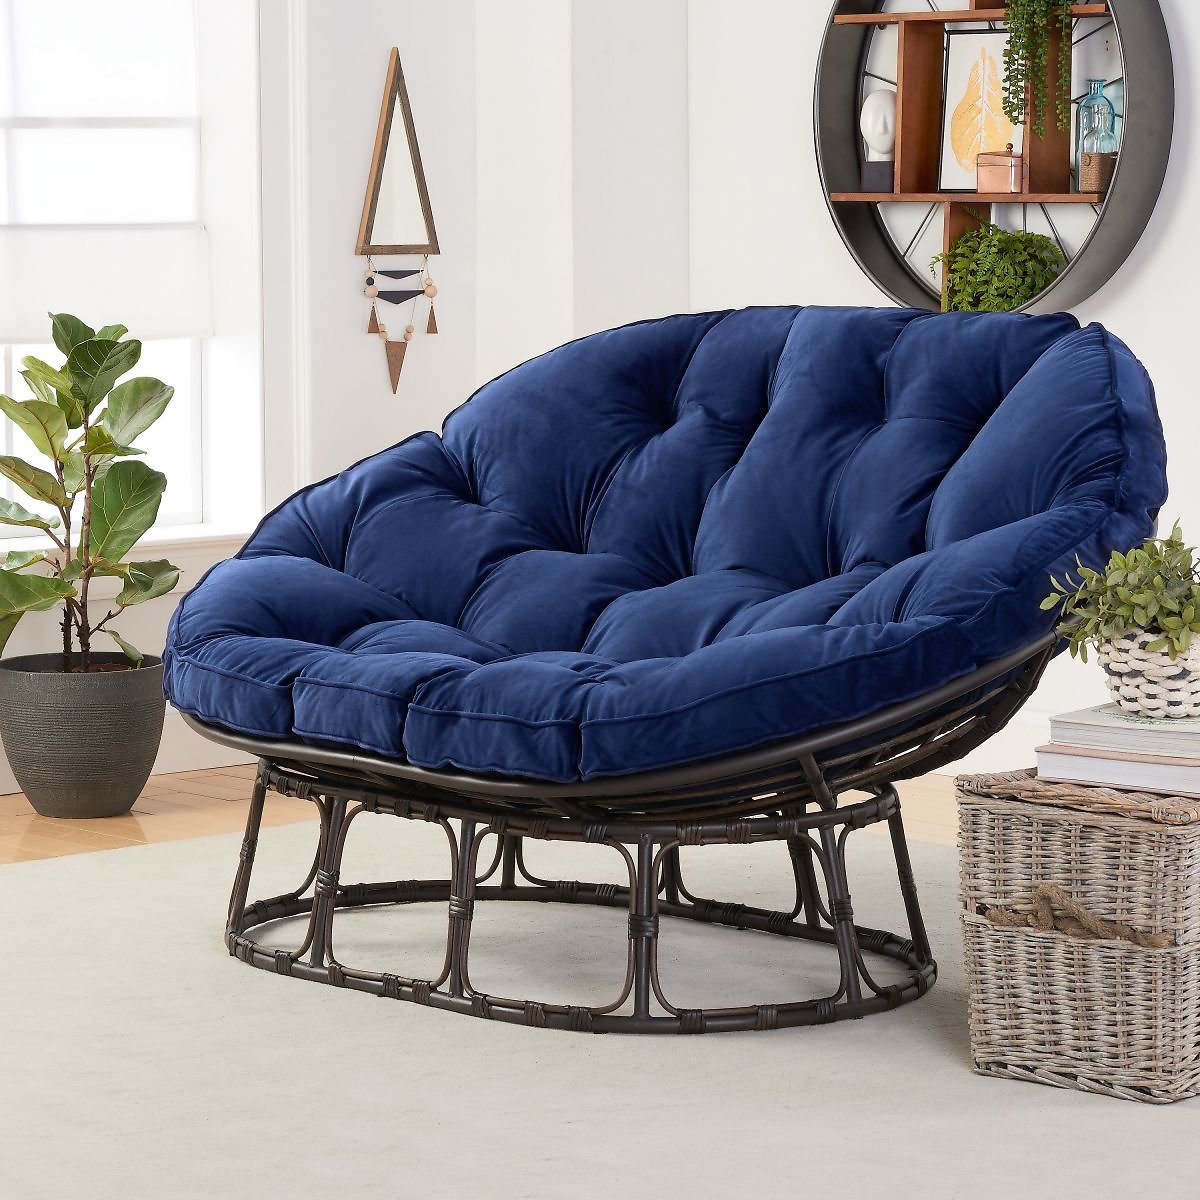 Better Homes & Gardens Papasan Bench w/ Cushion